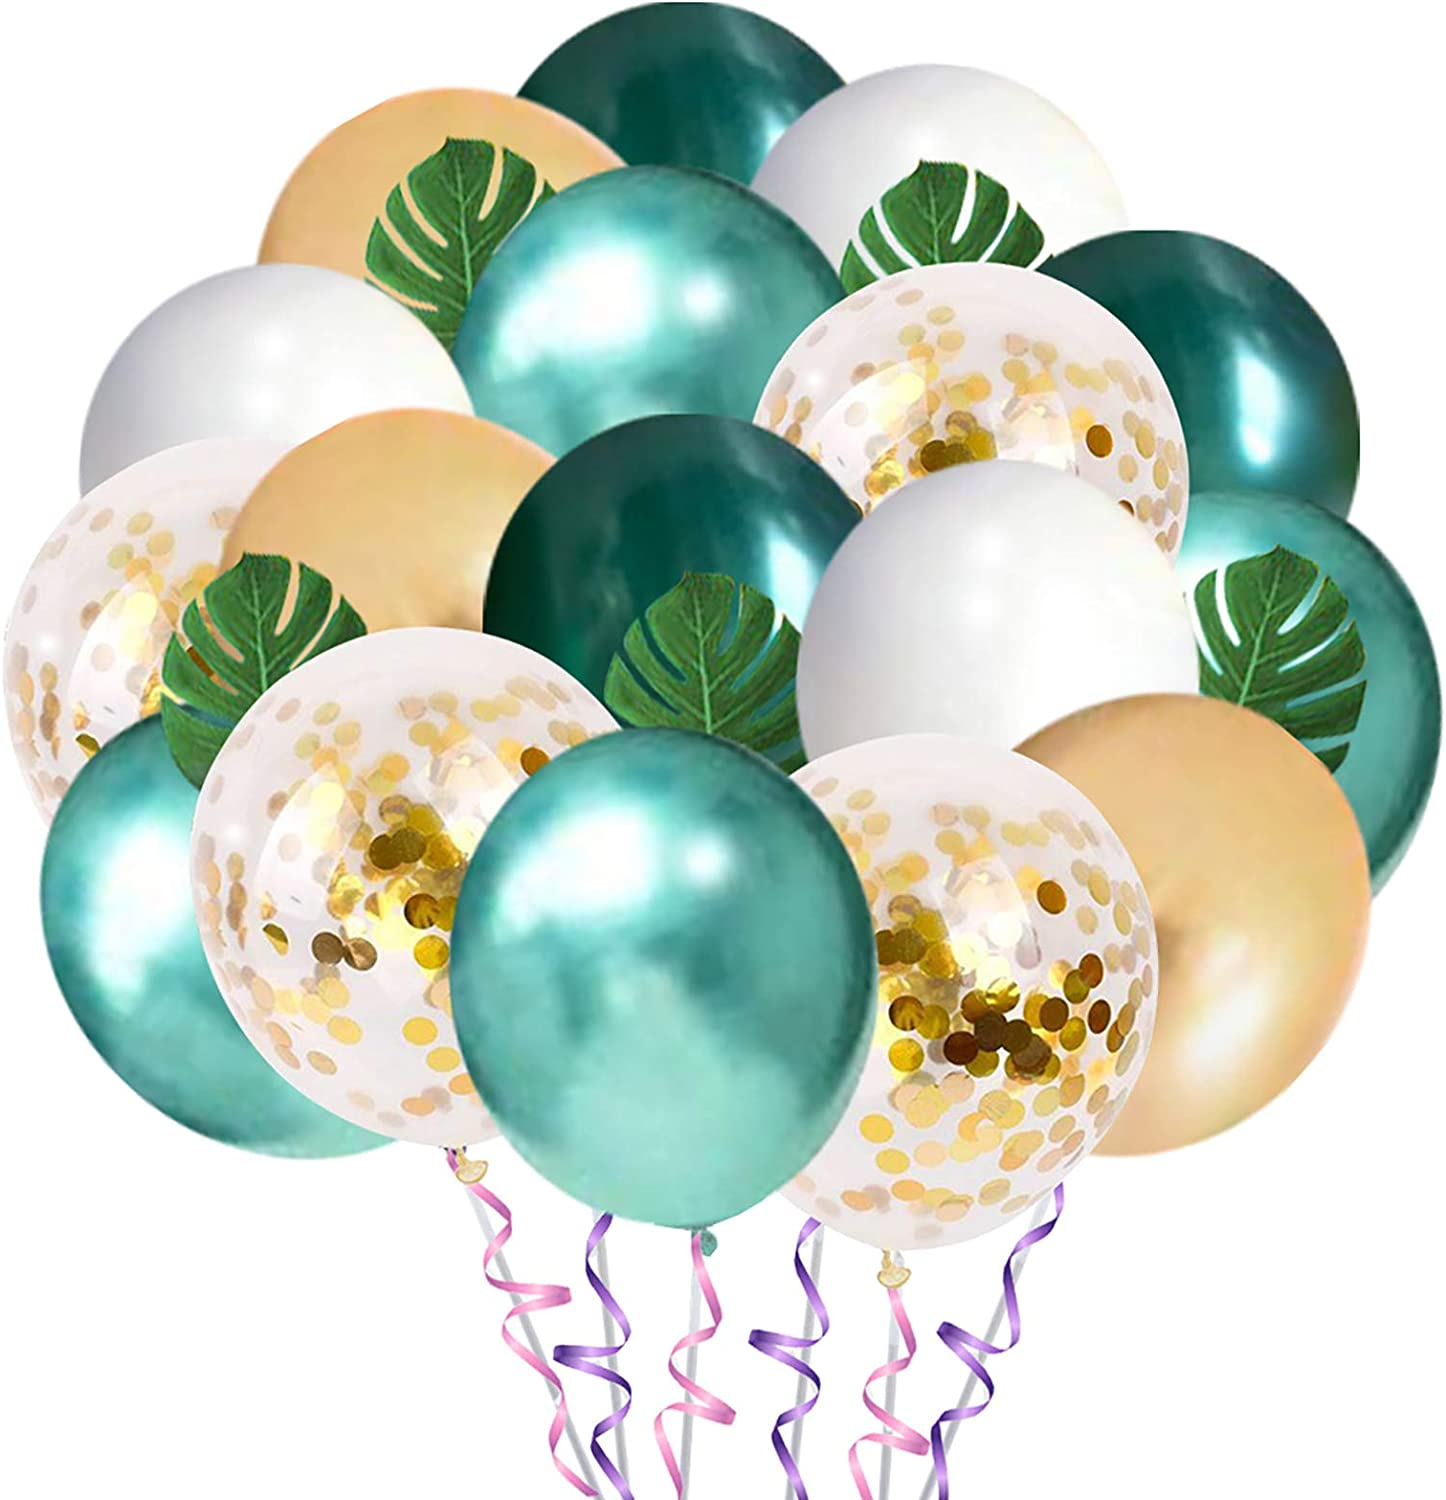 Jungle Theme Party Balloons 50 Pack, 12 Inches Green White Gold Latex Balloons with 10pcs Palm Leaves for Baby Shower, Tropical, Birthday Party Decorations